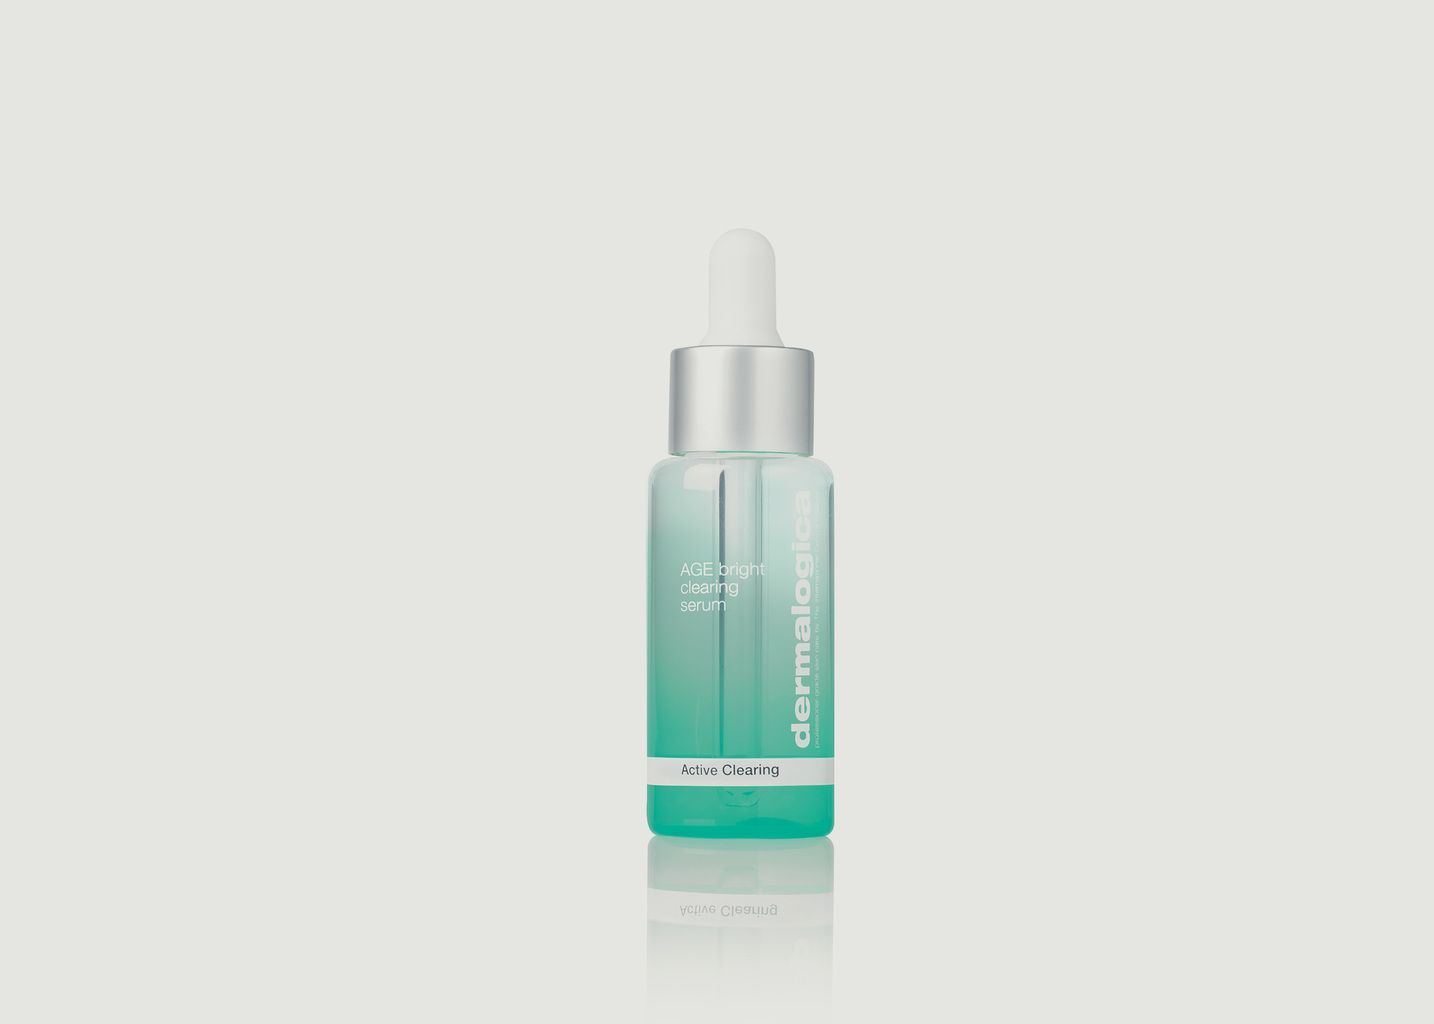 Age bright clearing  serum 30ml - Dermalogica